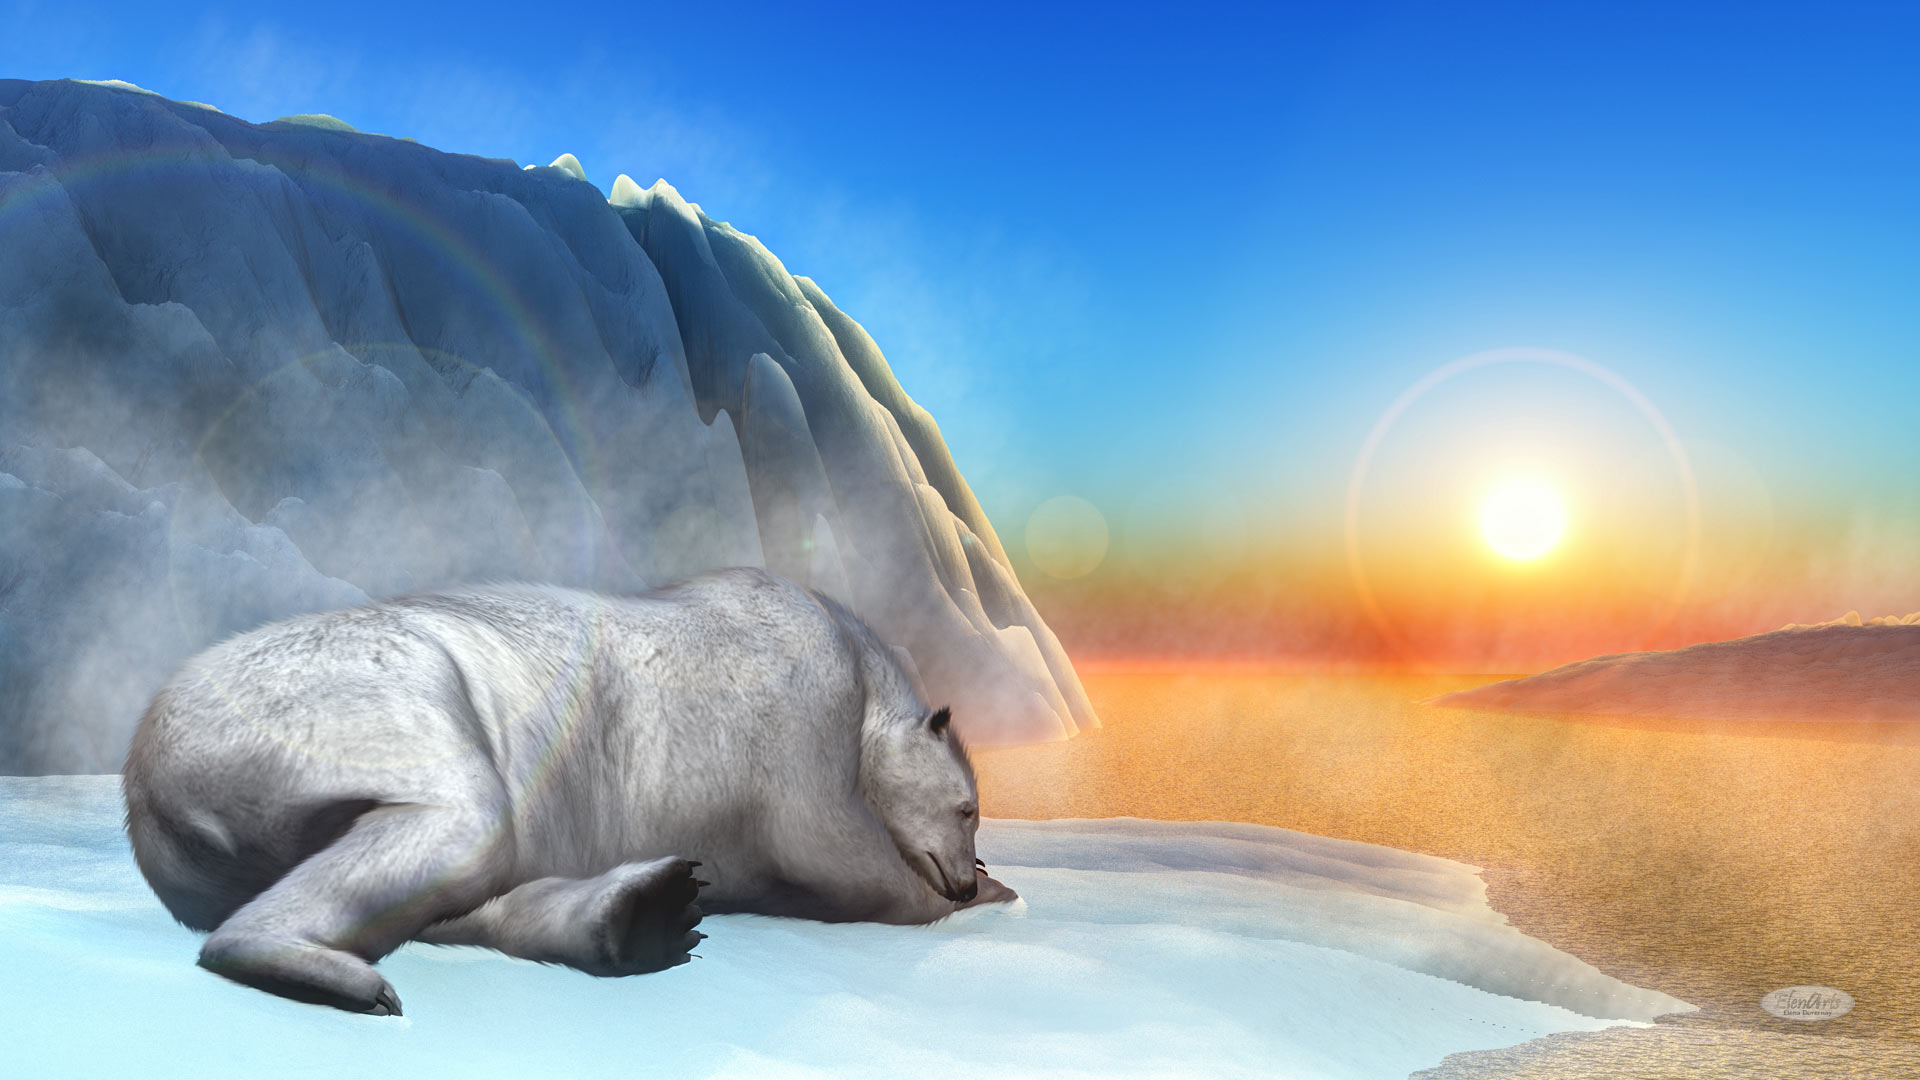 Polar bear sleeping upon an iceberg by sunset – 3D render